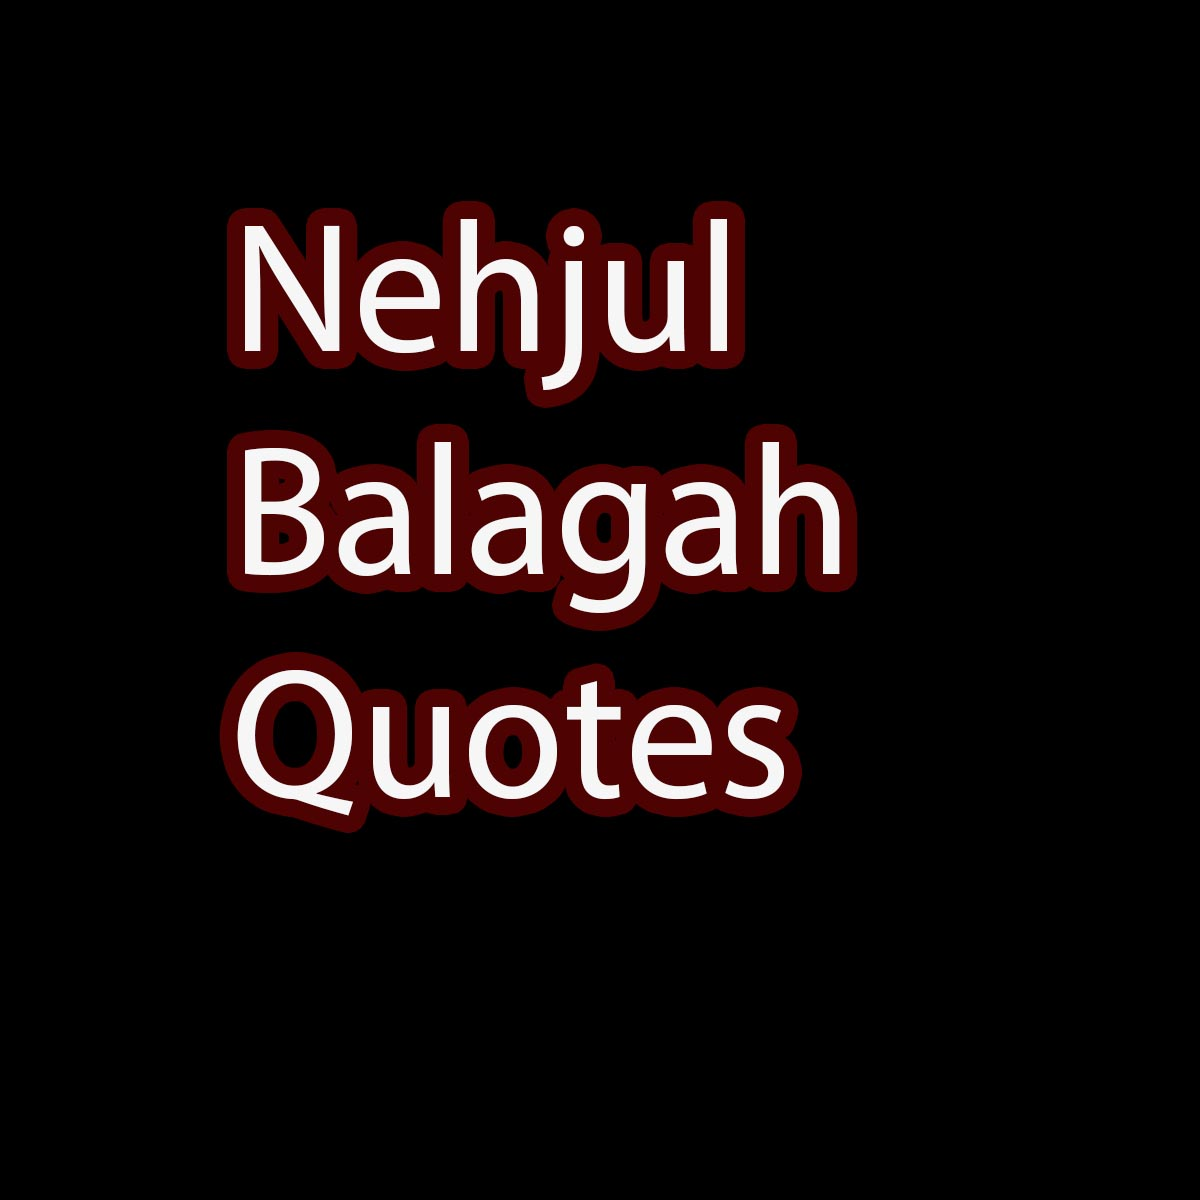 nehjul balagah quotes sayings